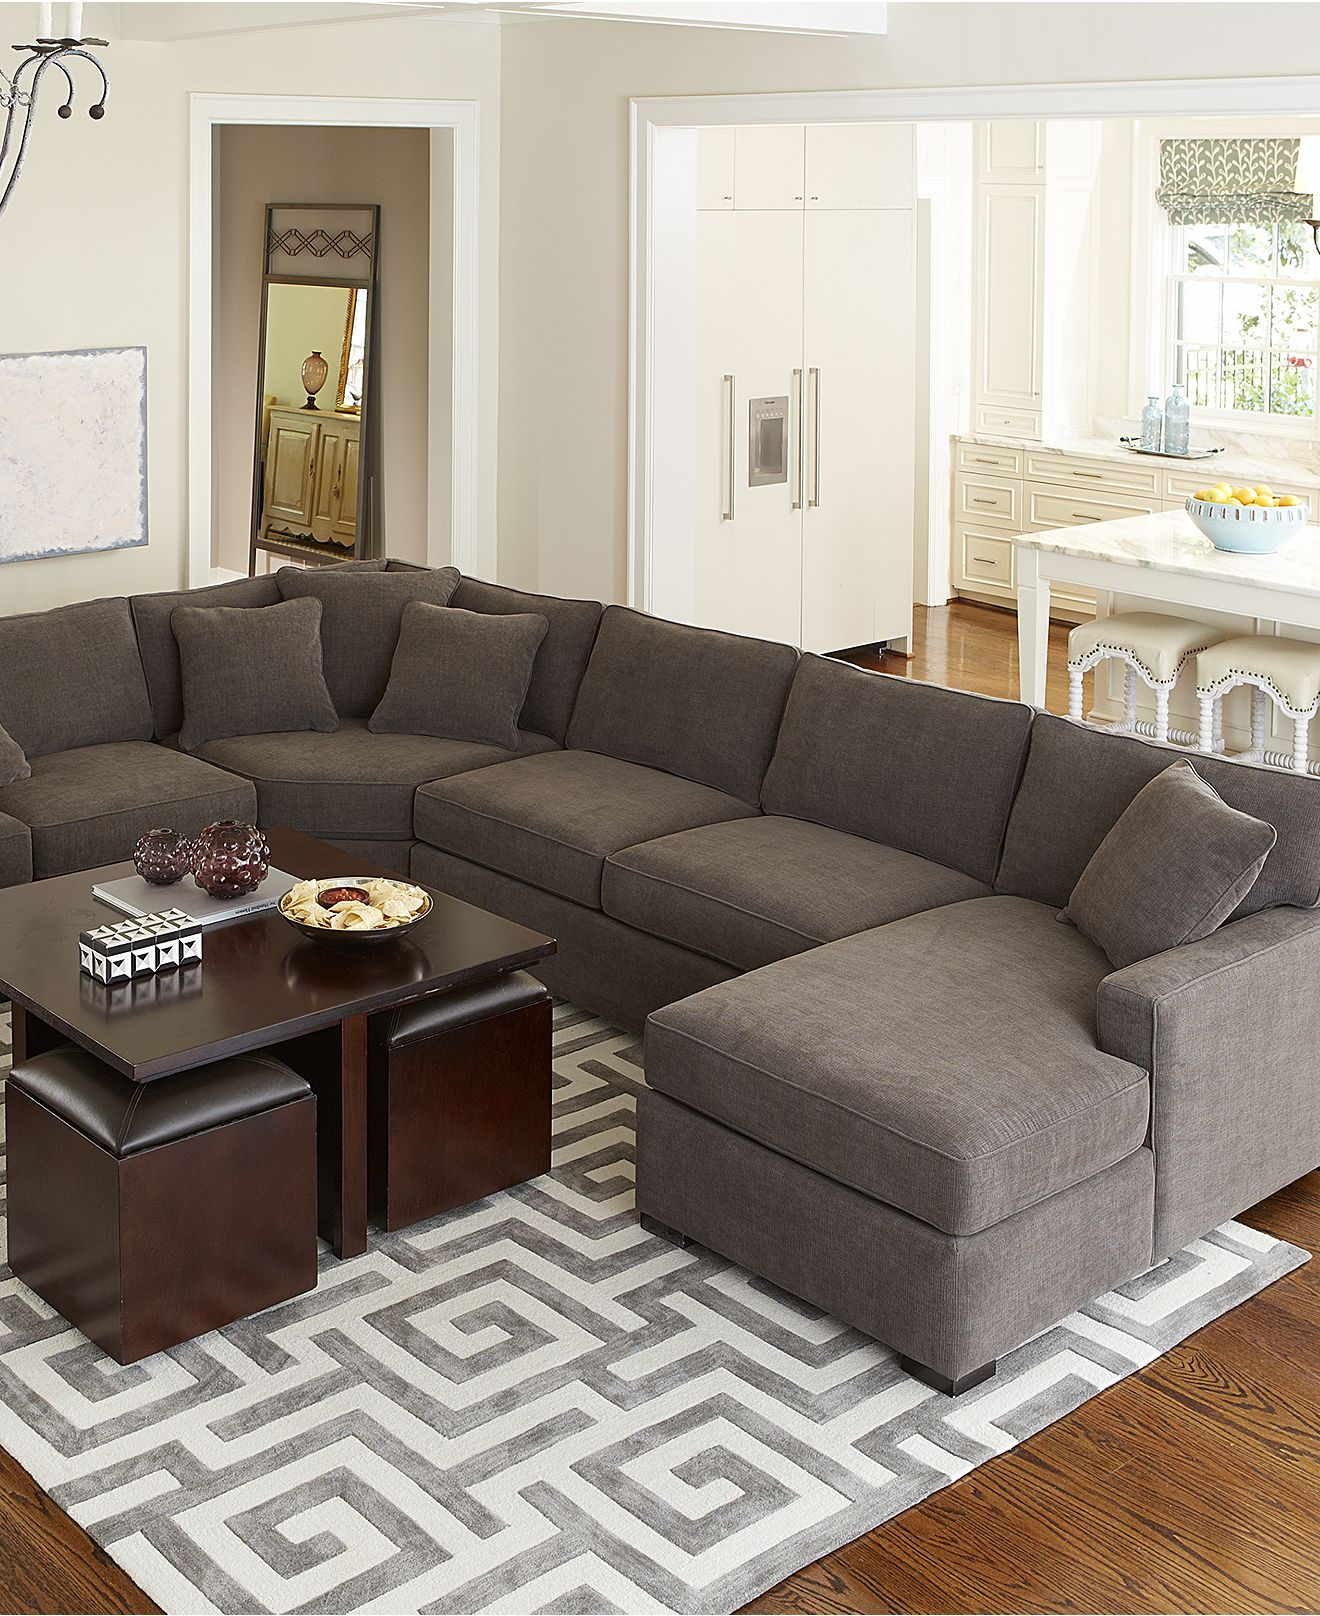 Lovely Sofa Set Cheap Living Room Sets Under $500 5 Piece Leather Living for Lovely Living Room Sets Under 1000